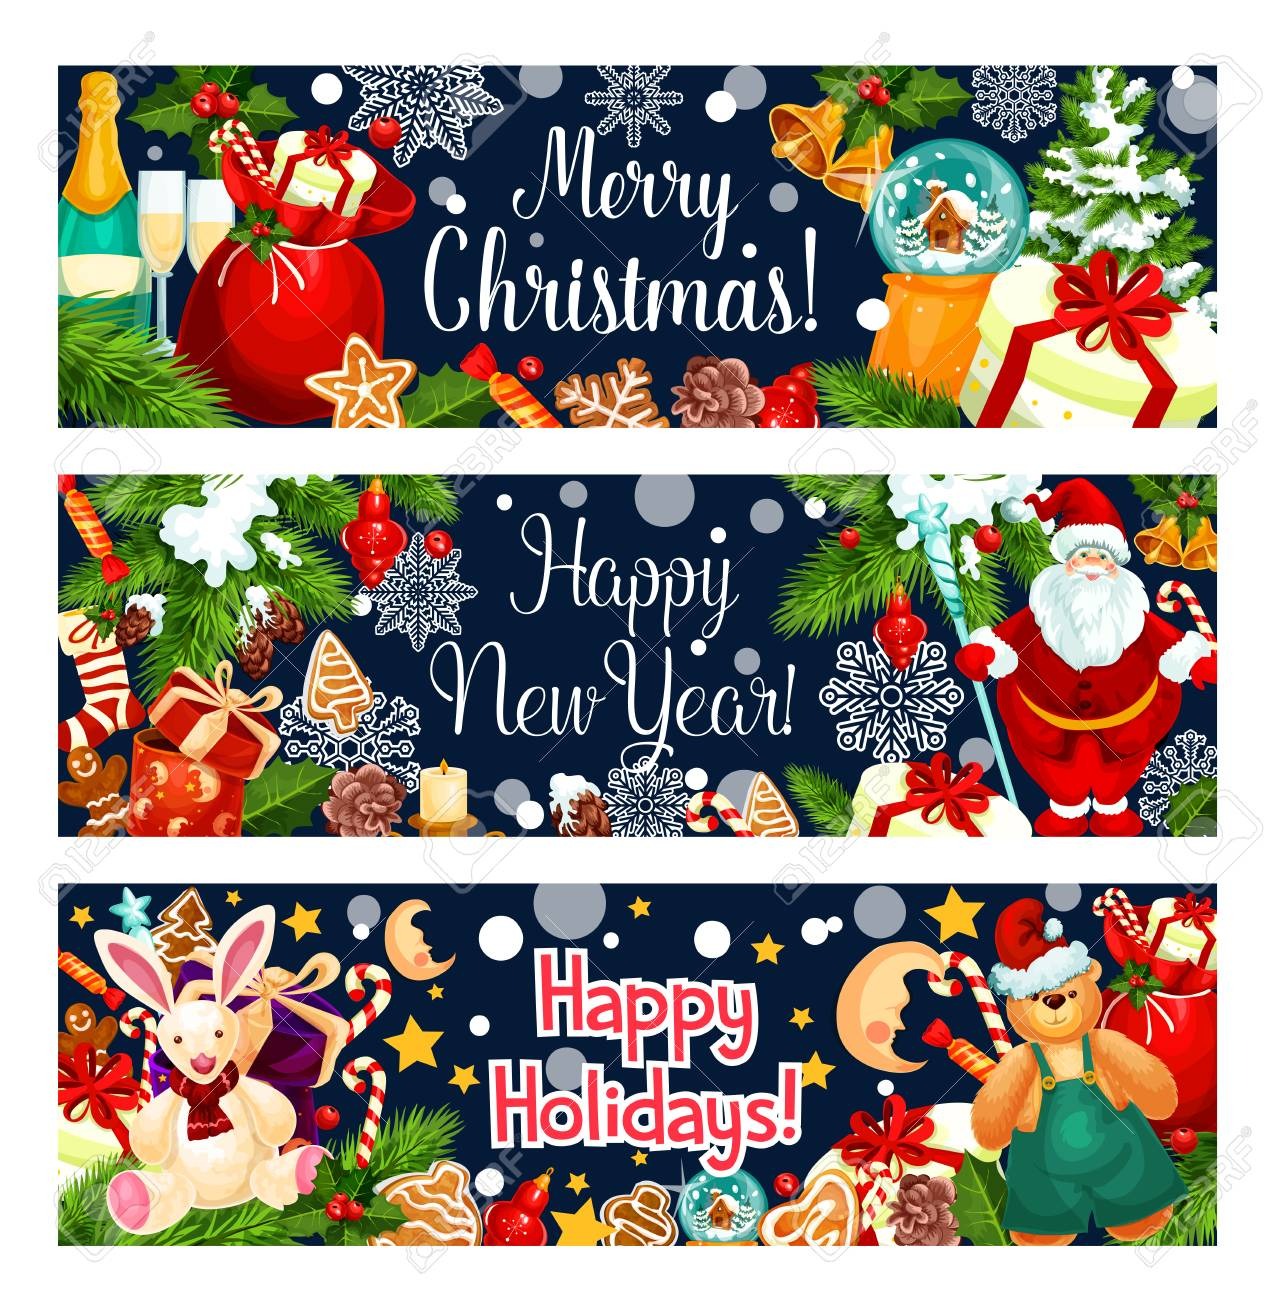 Merry Christmas, Happy New Year Wish For Winter Holiday Greeting ...